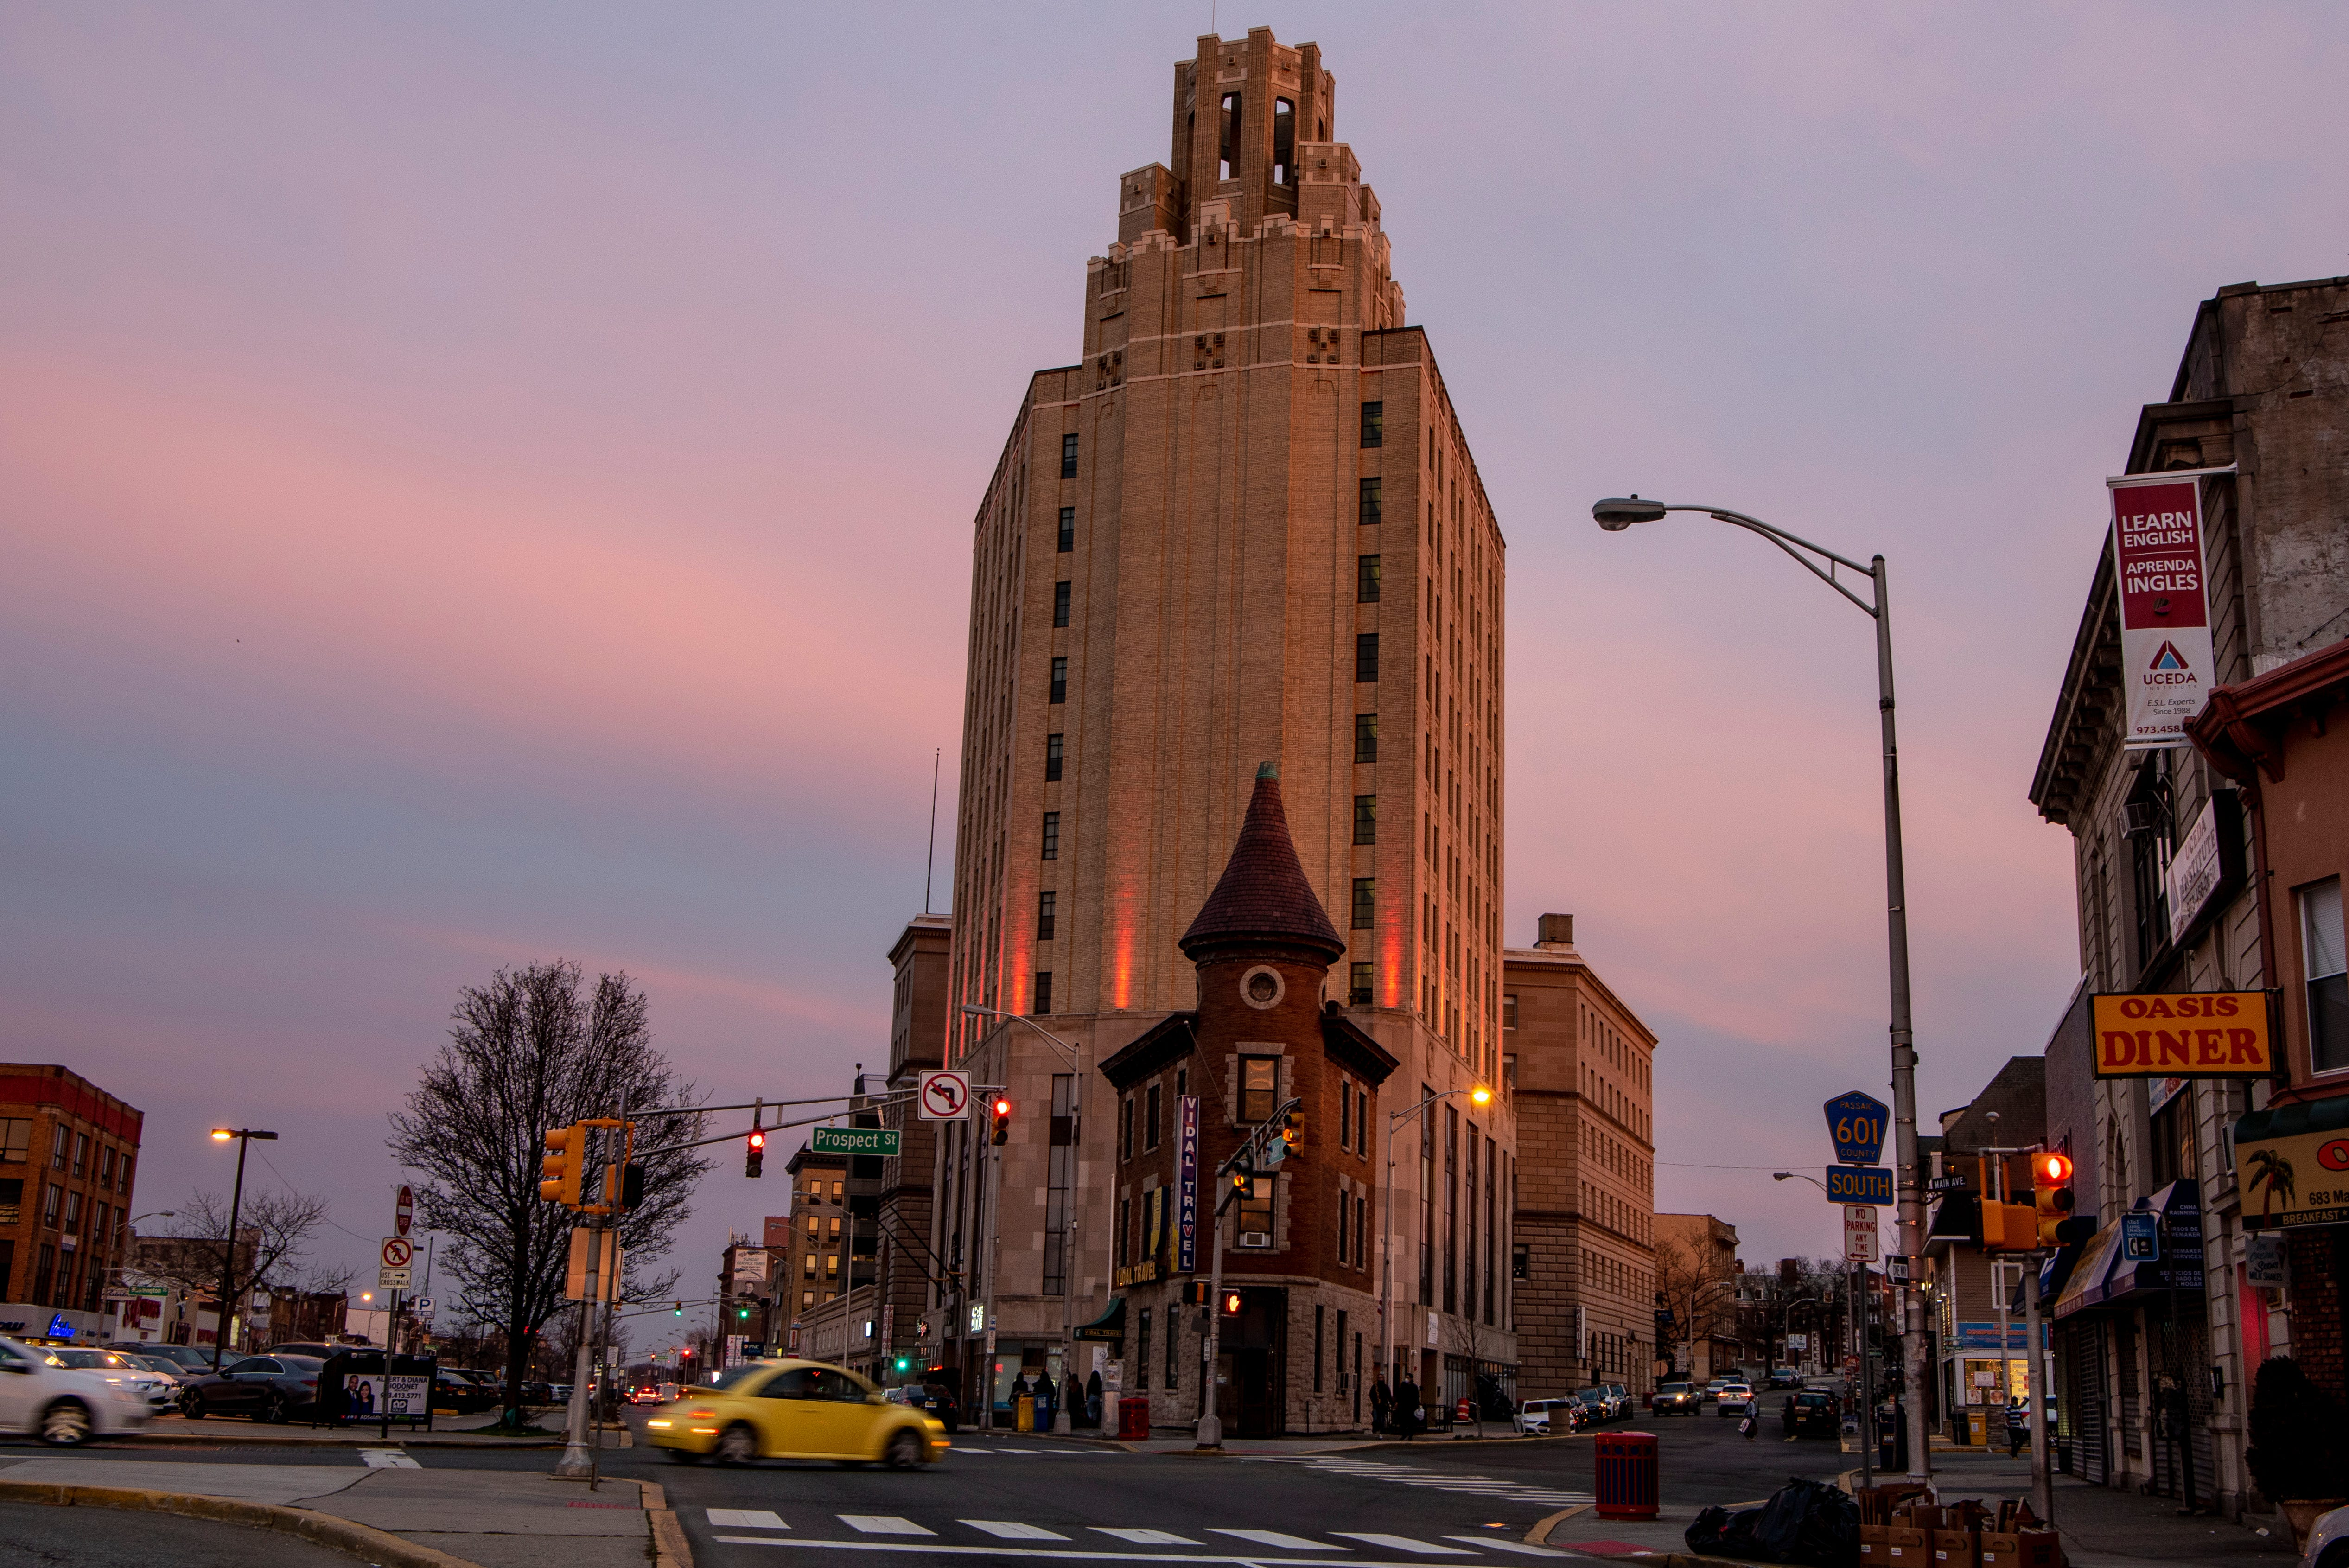 As the sun sets, the clouds turn the color of cotton candy behind the 11-story Art Deco building that sits at 663 Main Ave. The building was originally a bank when it opened in 1931, but now houses a Blink gym.